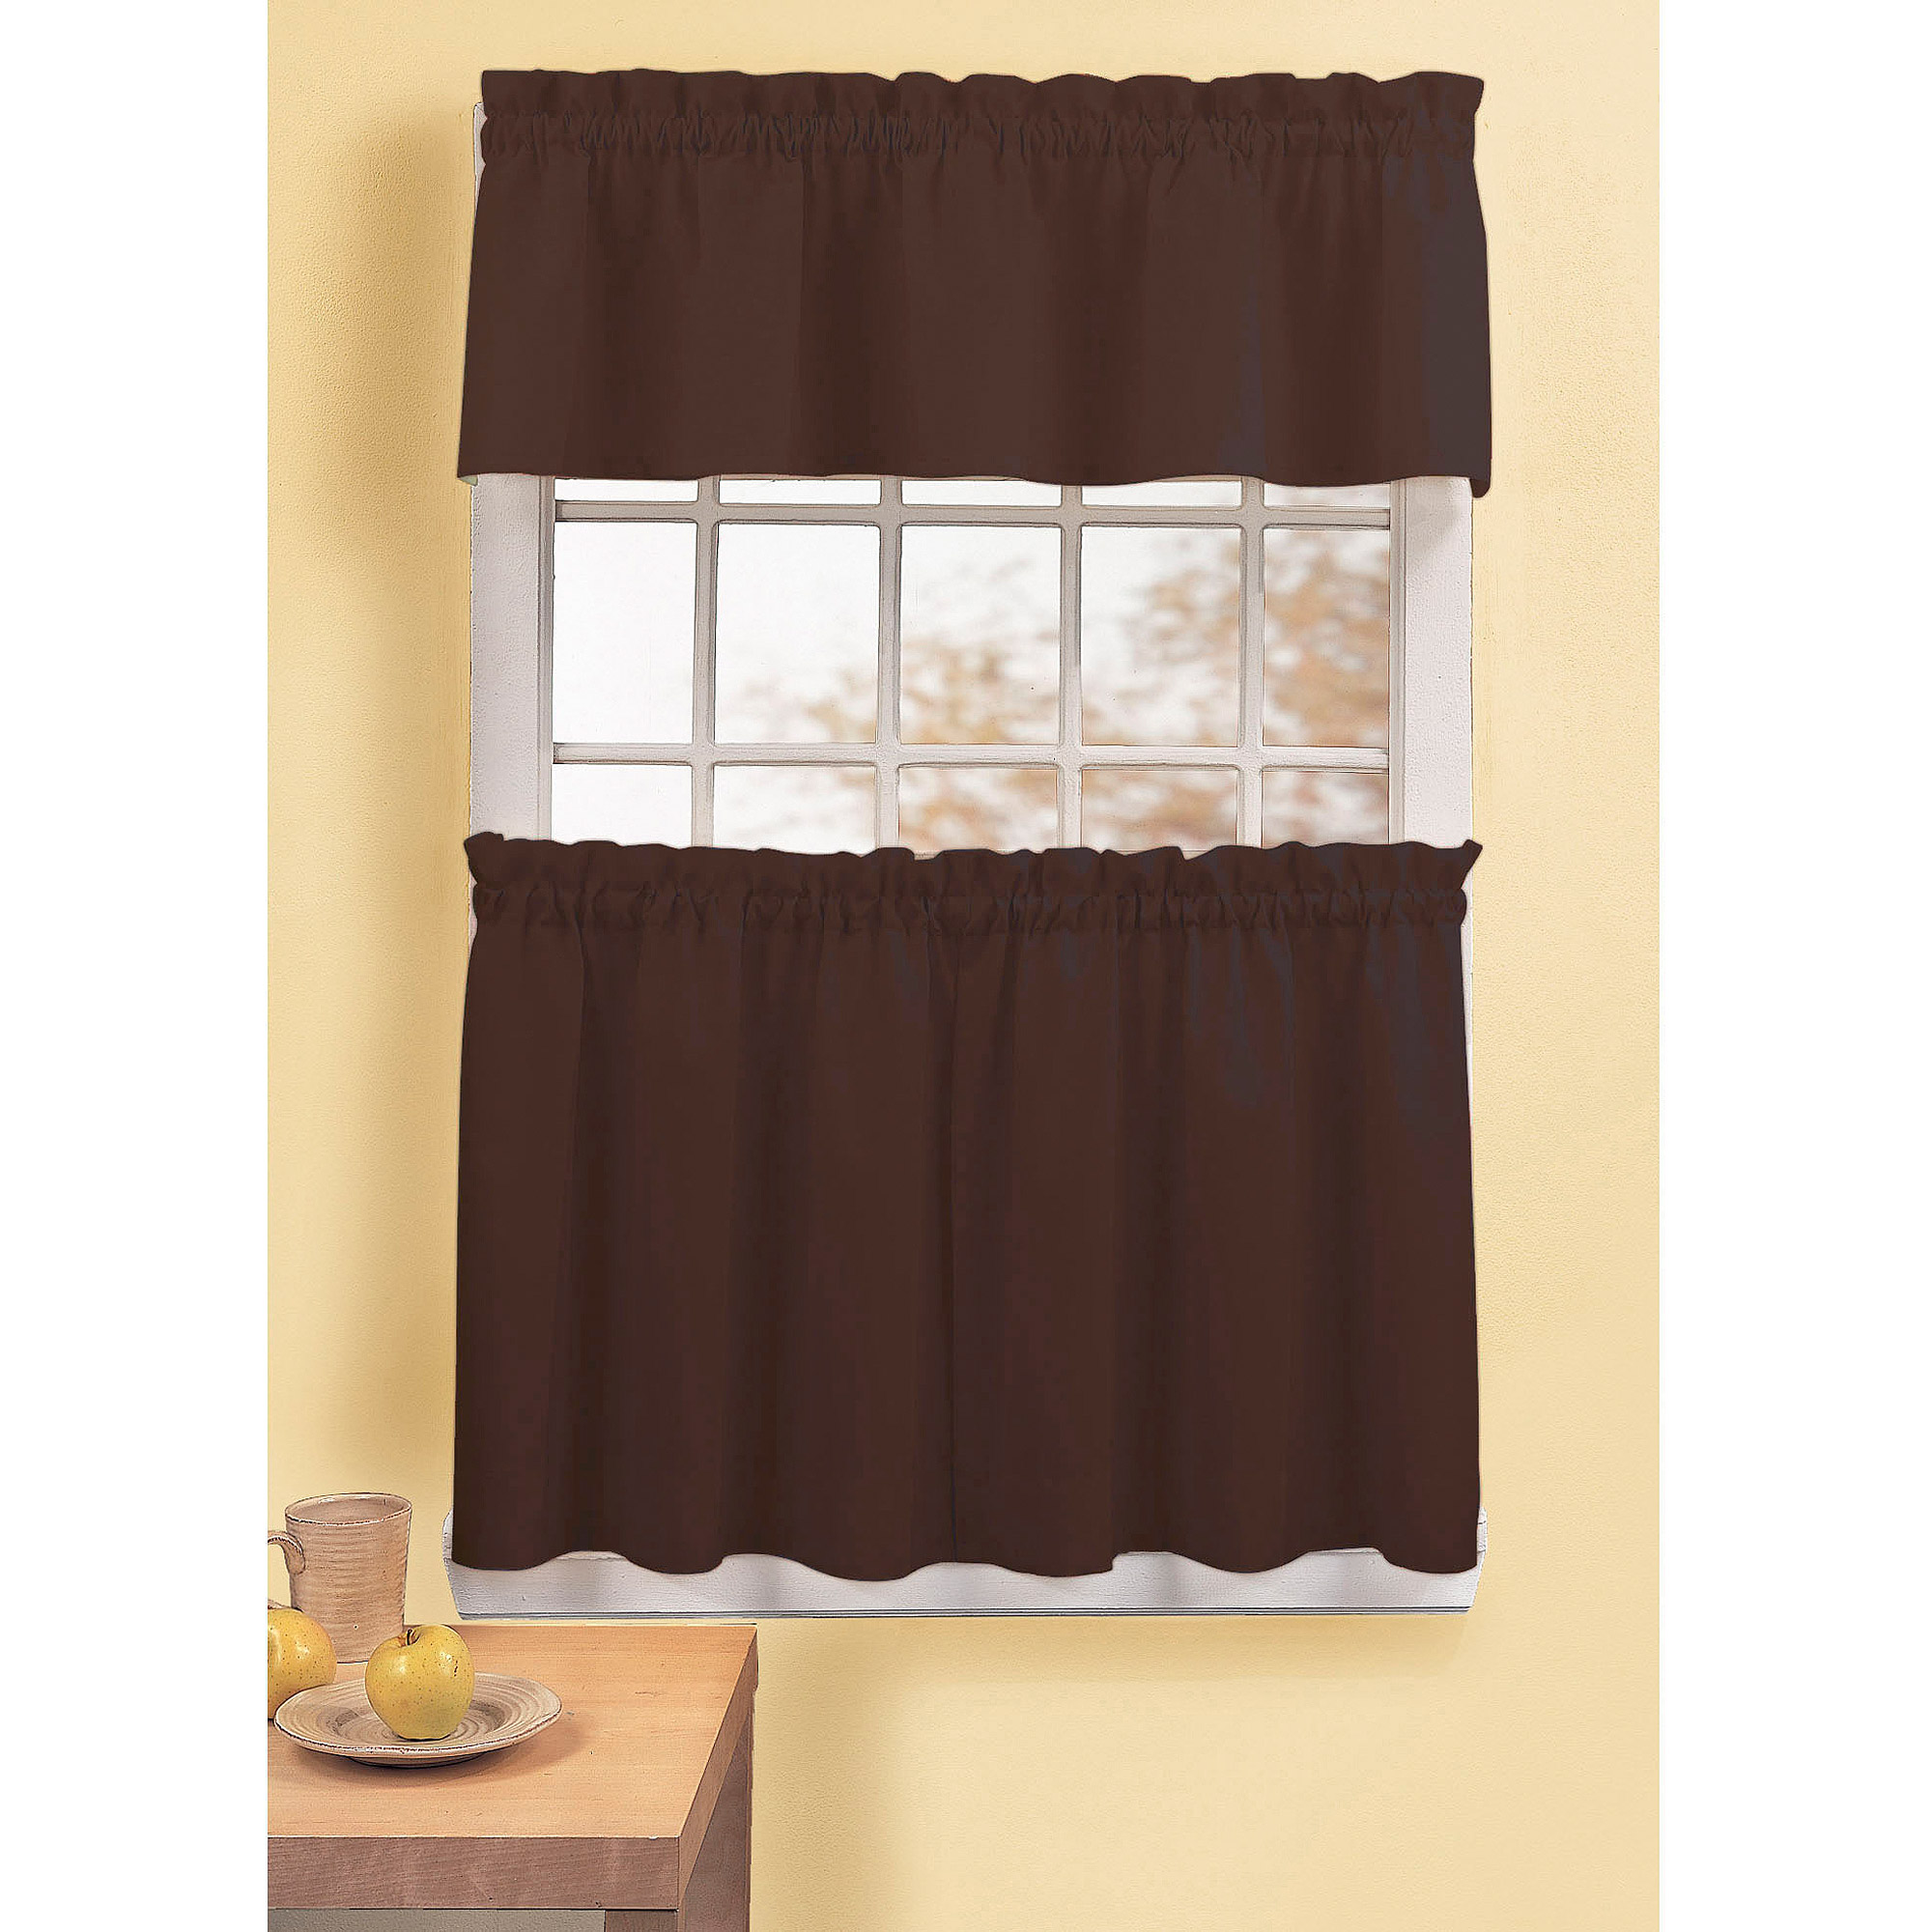 window toppers thecurtainshop camelot swags brown valances valance com